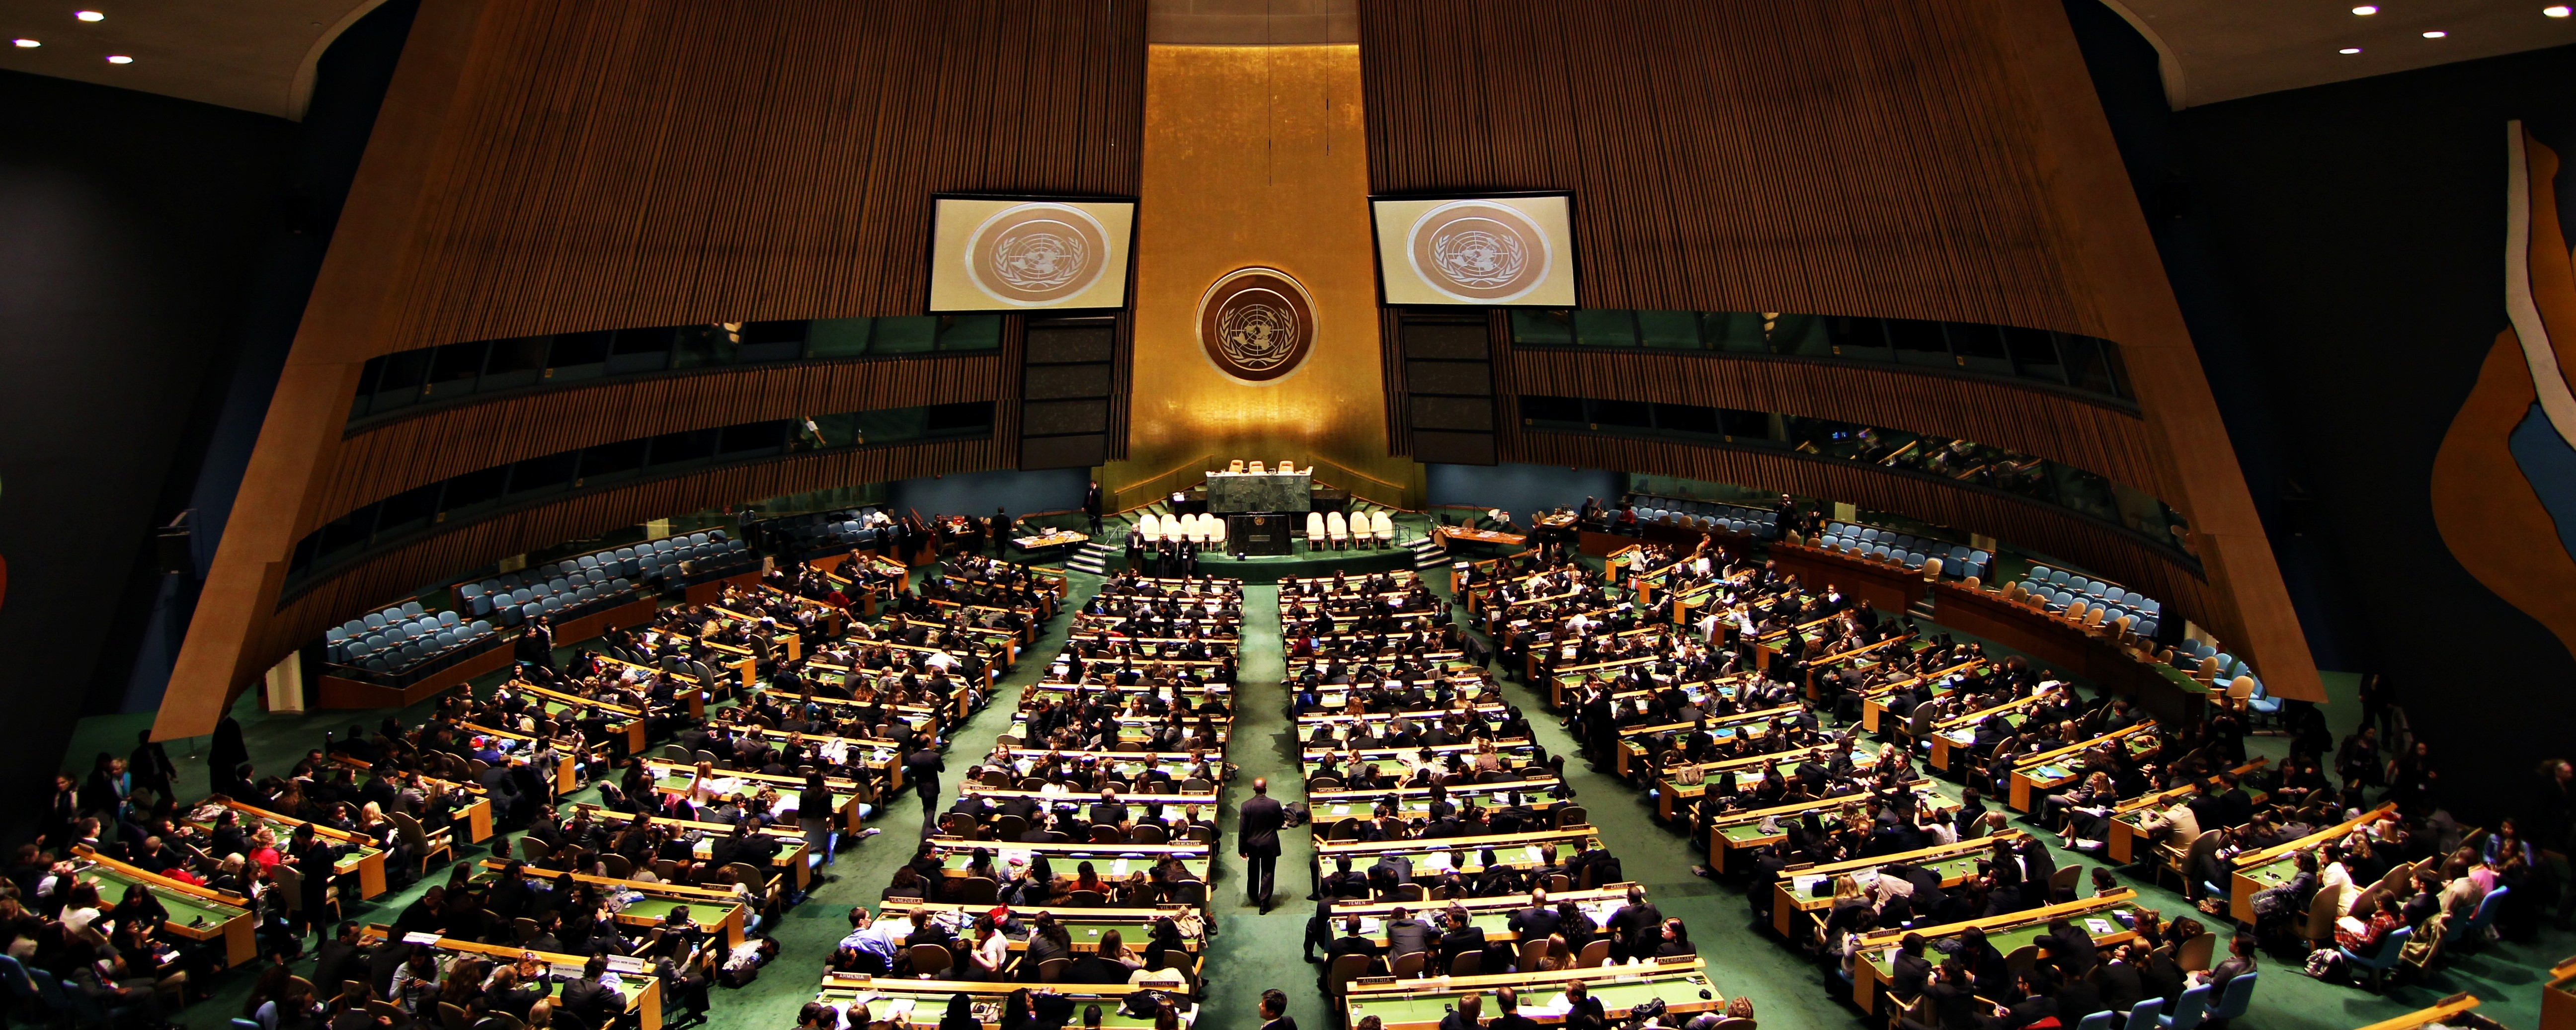 United nations general assembly hall 3-e1449681284488